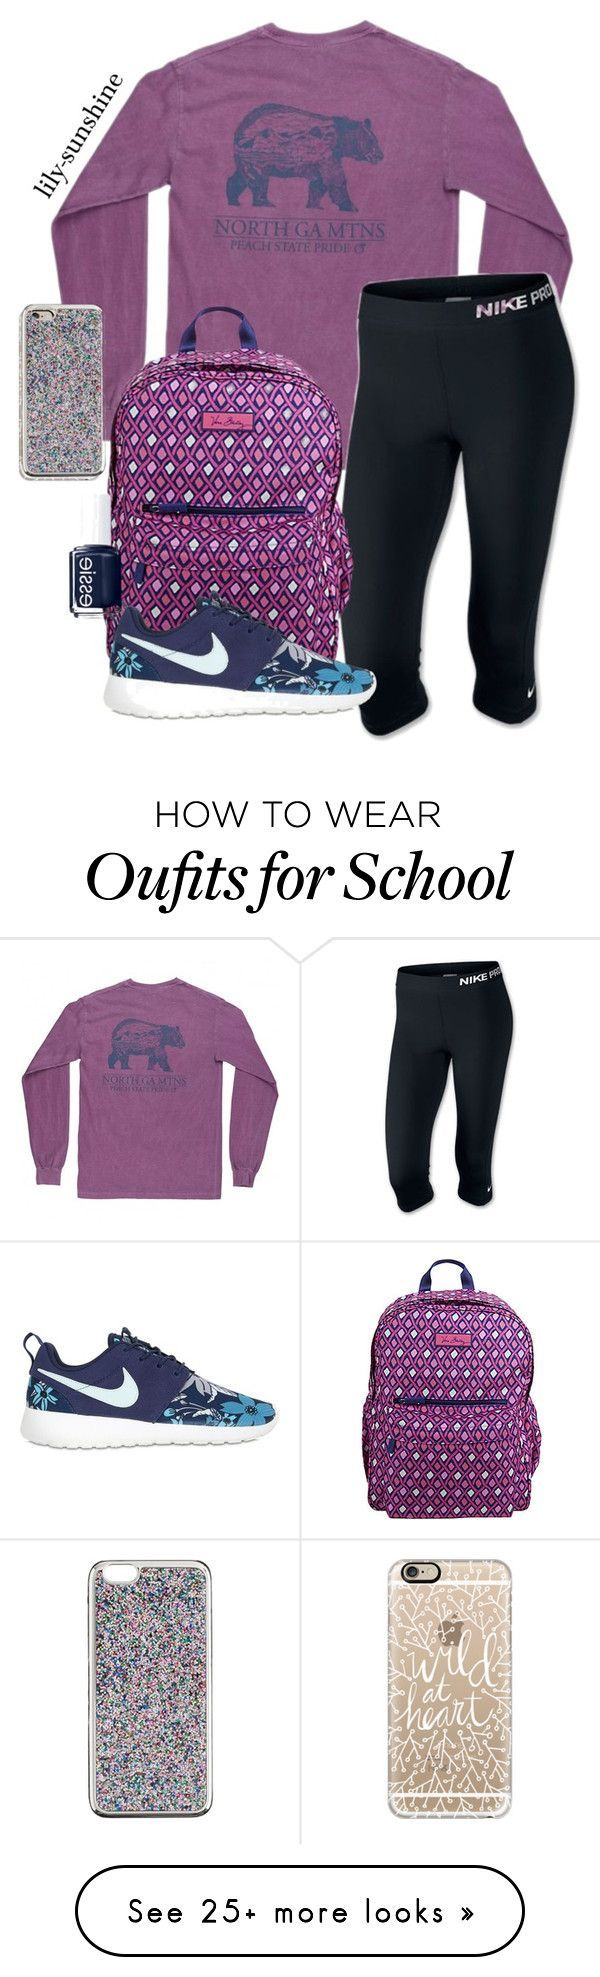 """""""If I could where these kinds of clothes to school"""" by lily-sunshine on Polyvore featuring NIKE, Vera Bradley, Casetify, Essie and J.Crew"""